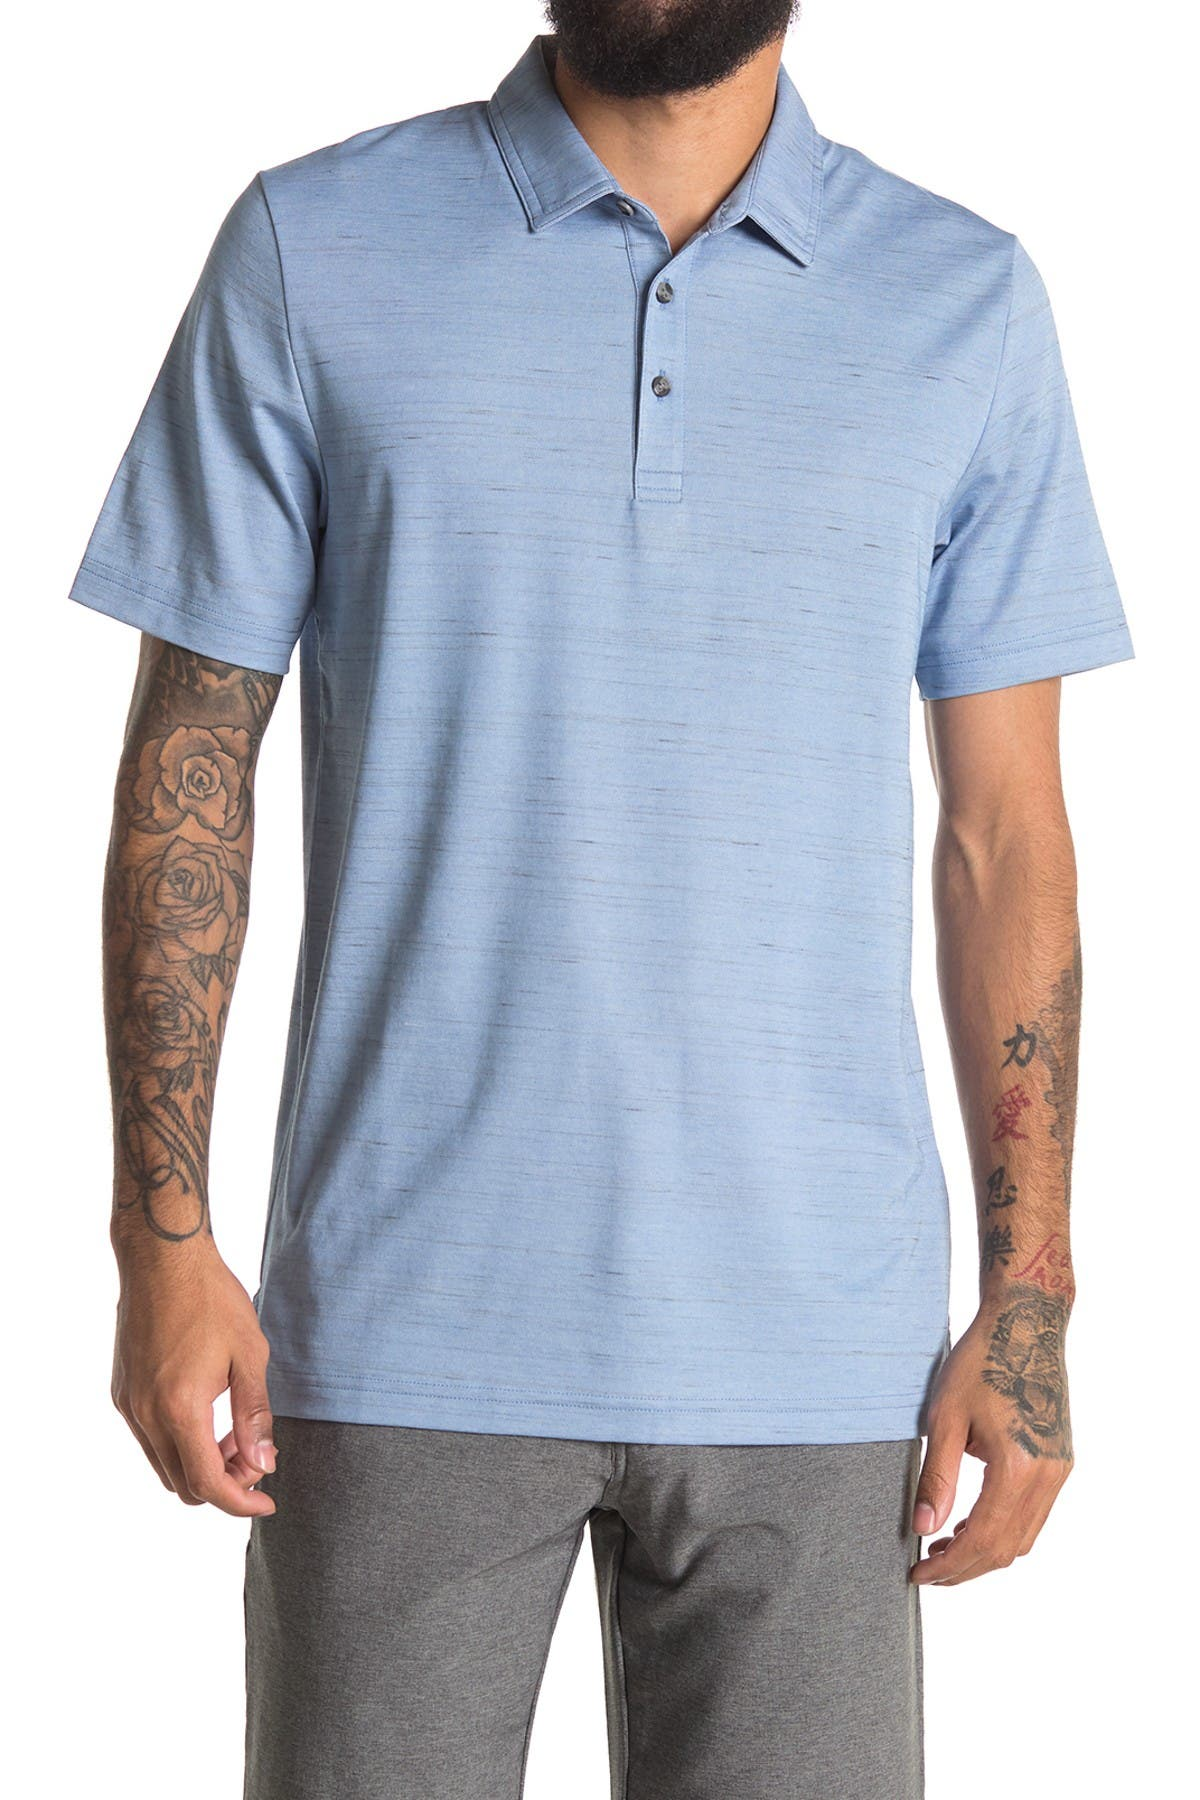 Image of TRAVIS MATHEW Tender Hooligan Short Sleeve Polo